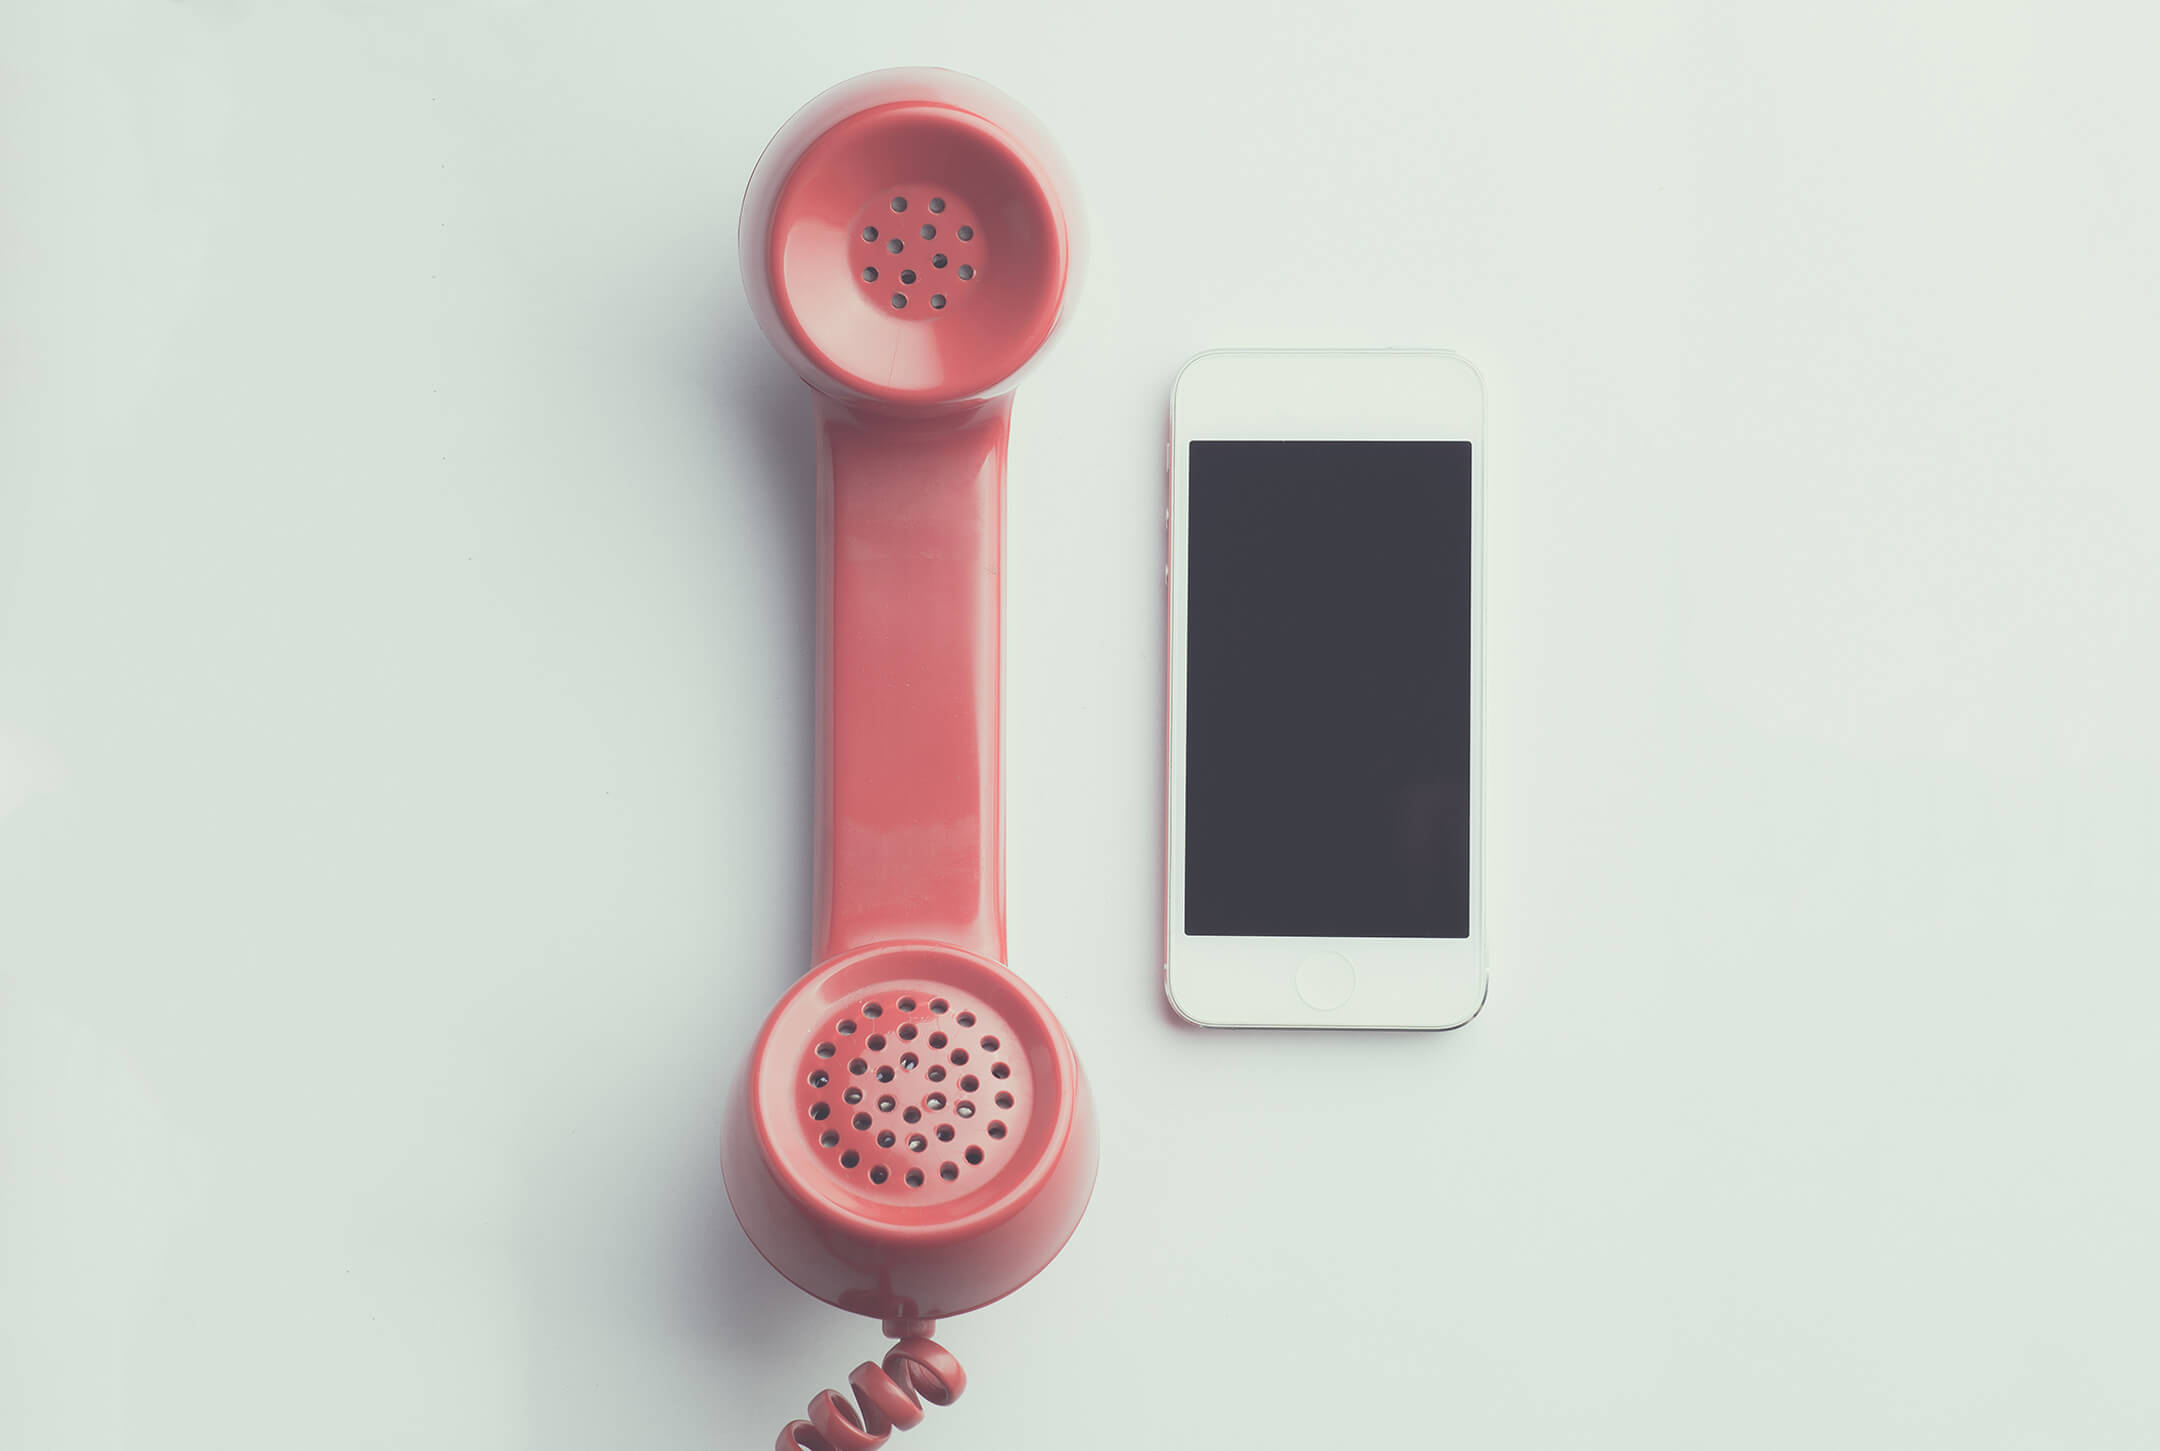 Understanding the Differences Between Call Answering Services: IVR, Live Agents, and Call Centers